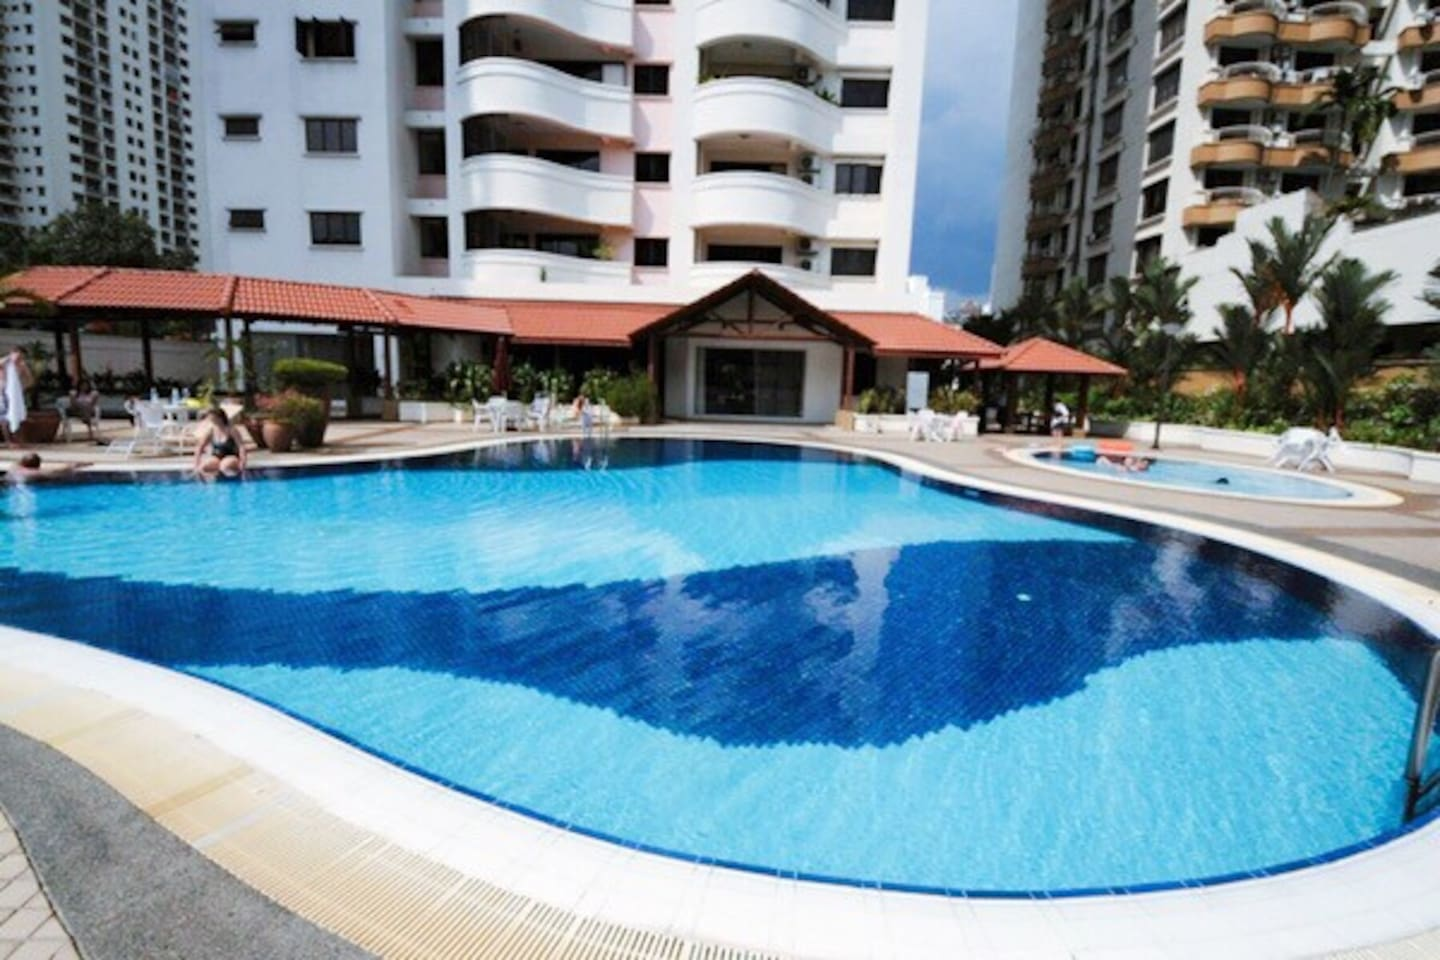 You can swim and enjoy the view of city center make you feel like staying at a resort.